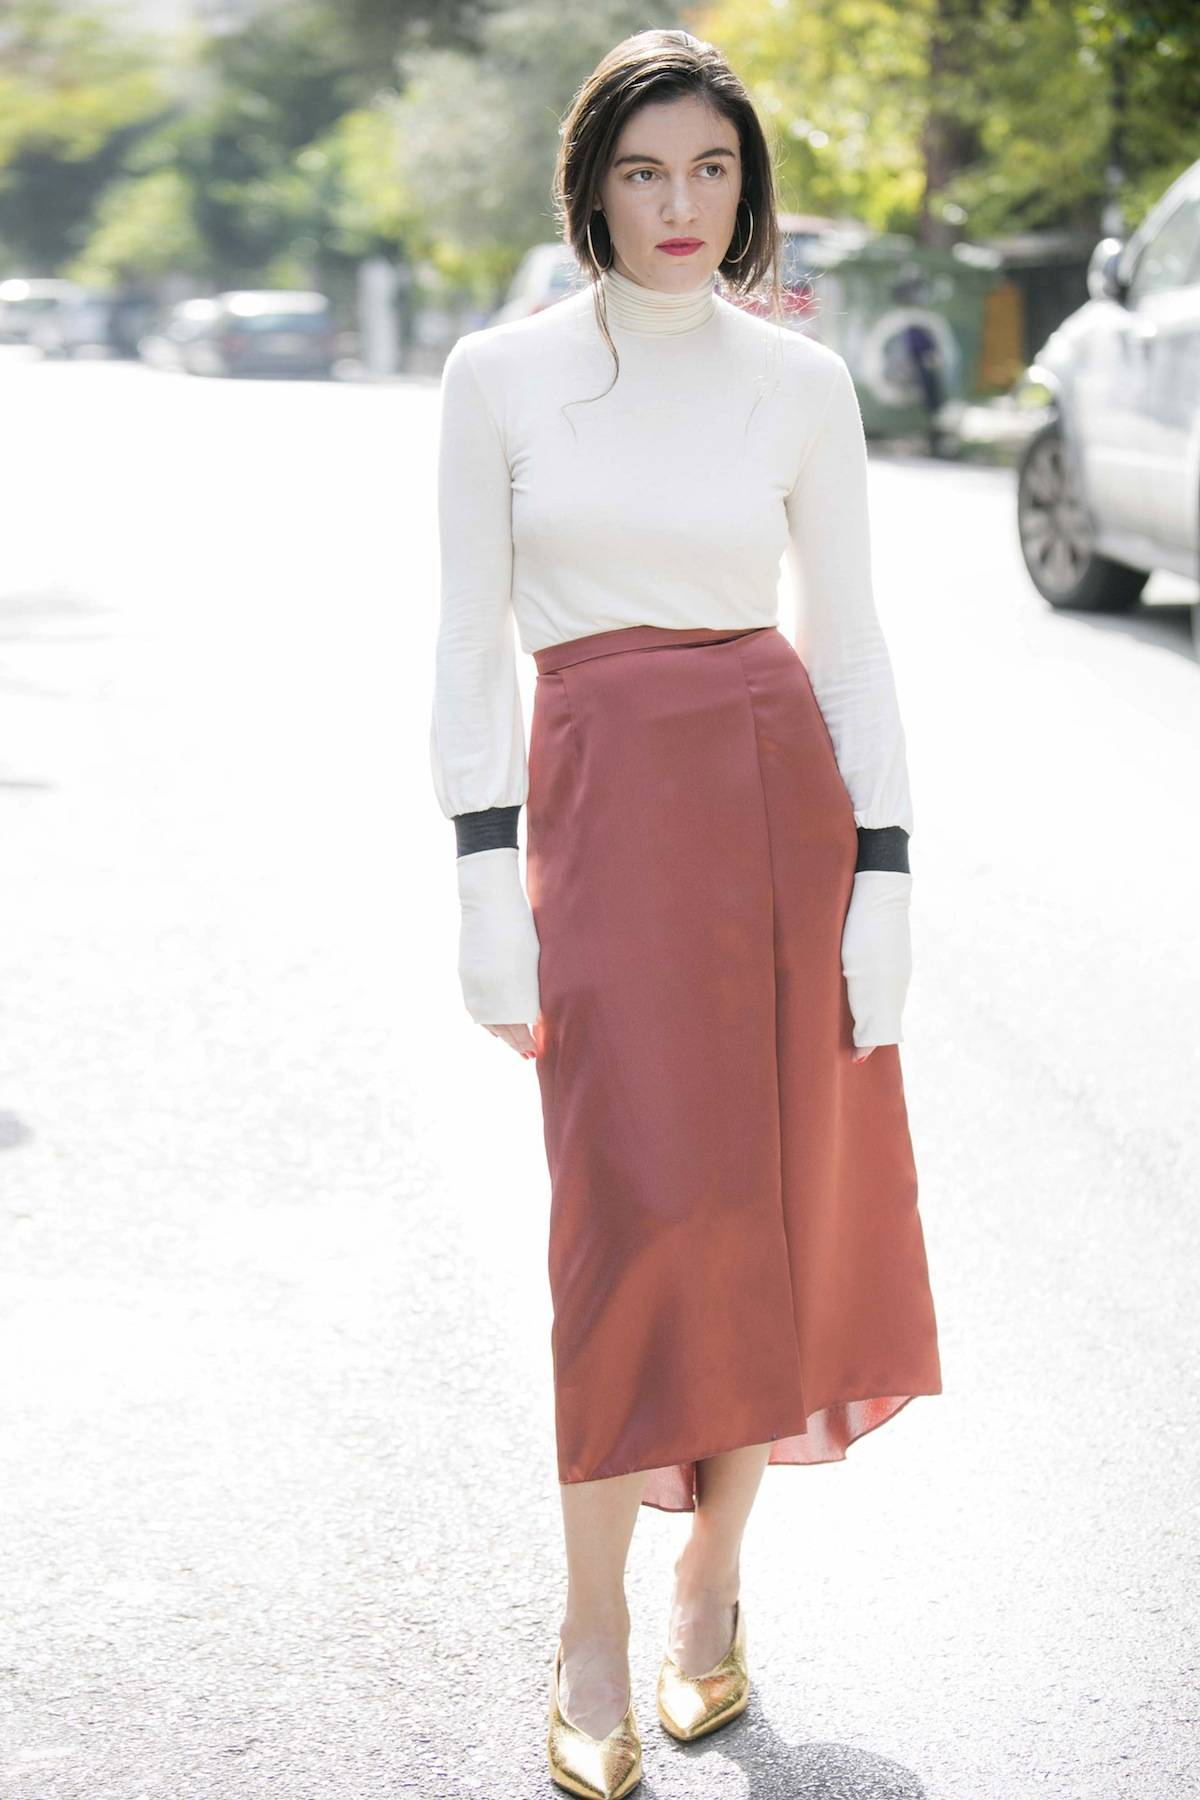 ysmf.turtleneck.satin.skirt.by.eleftheriades.yesymphony